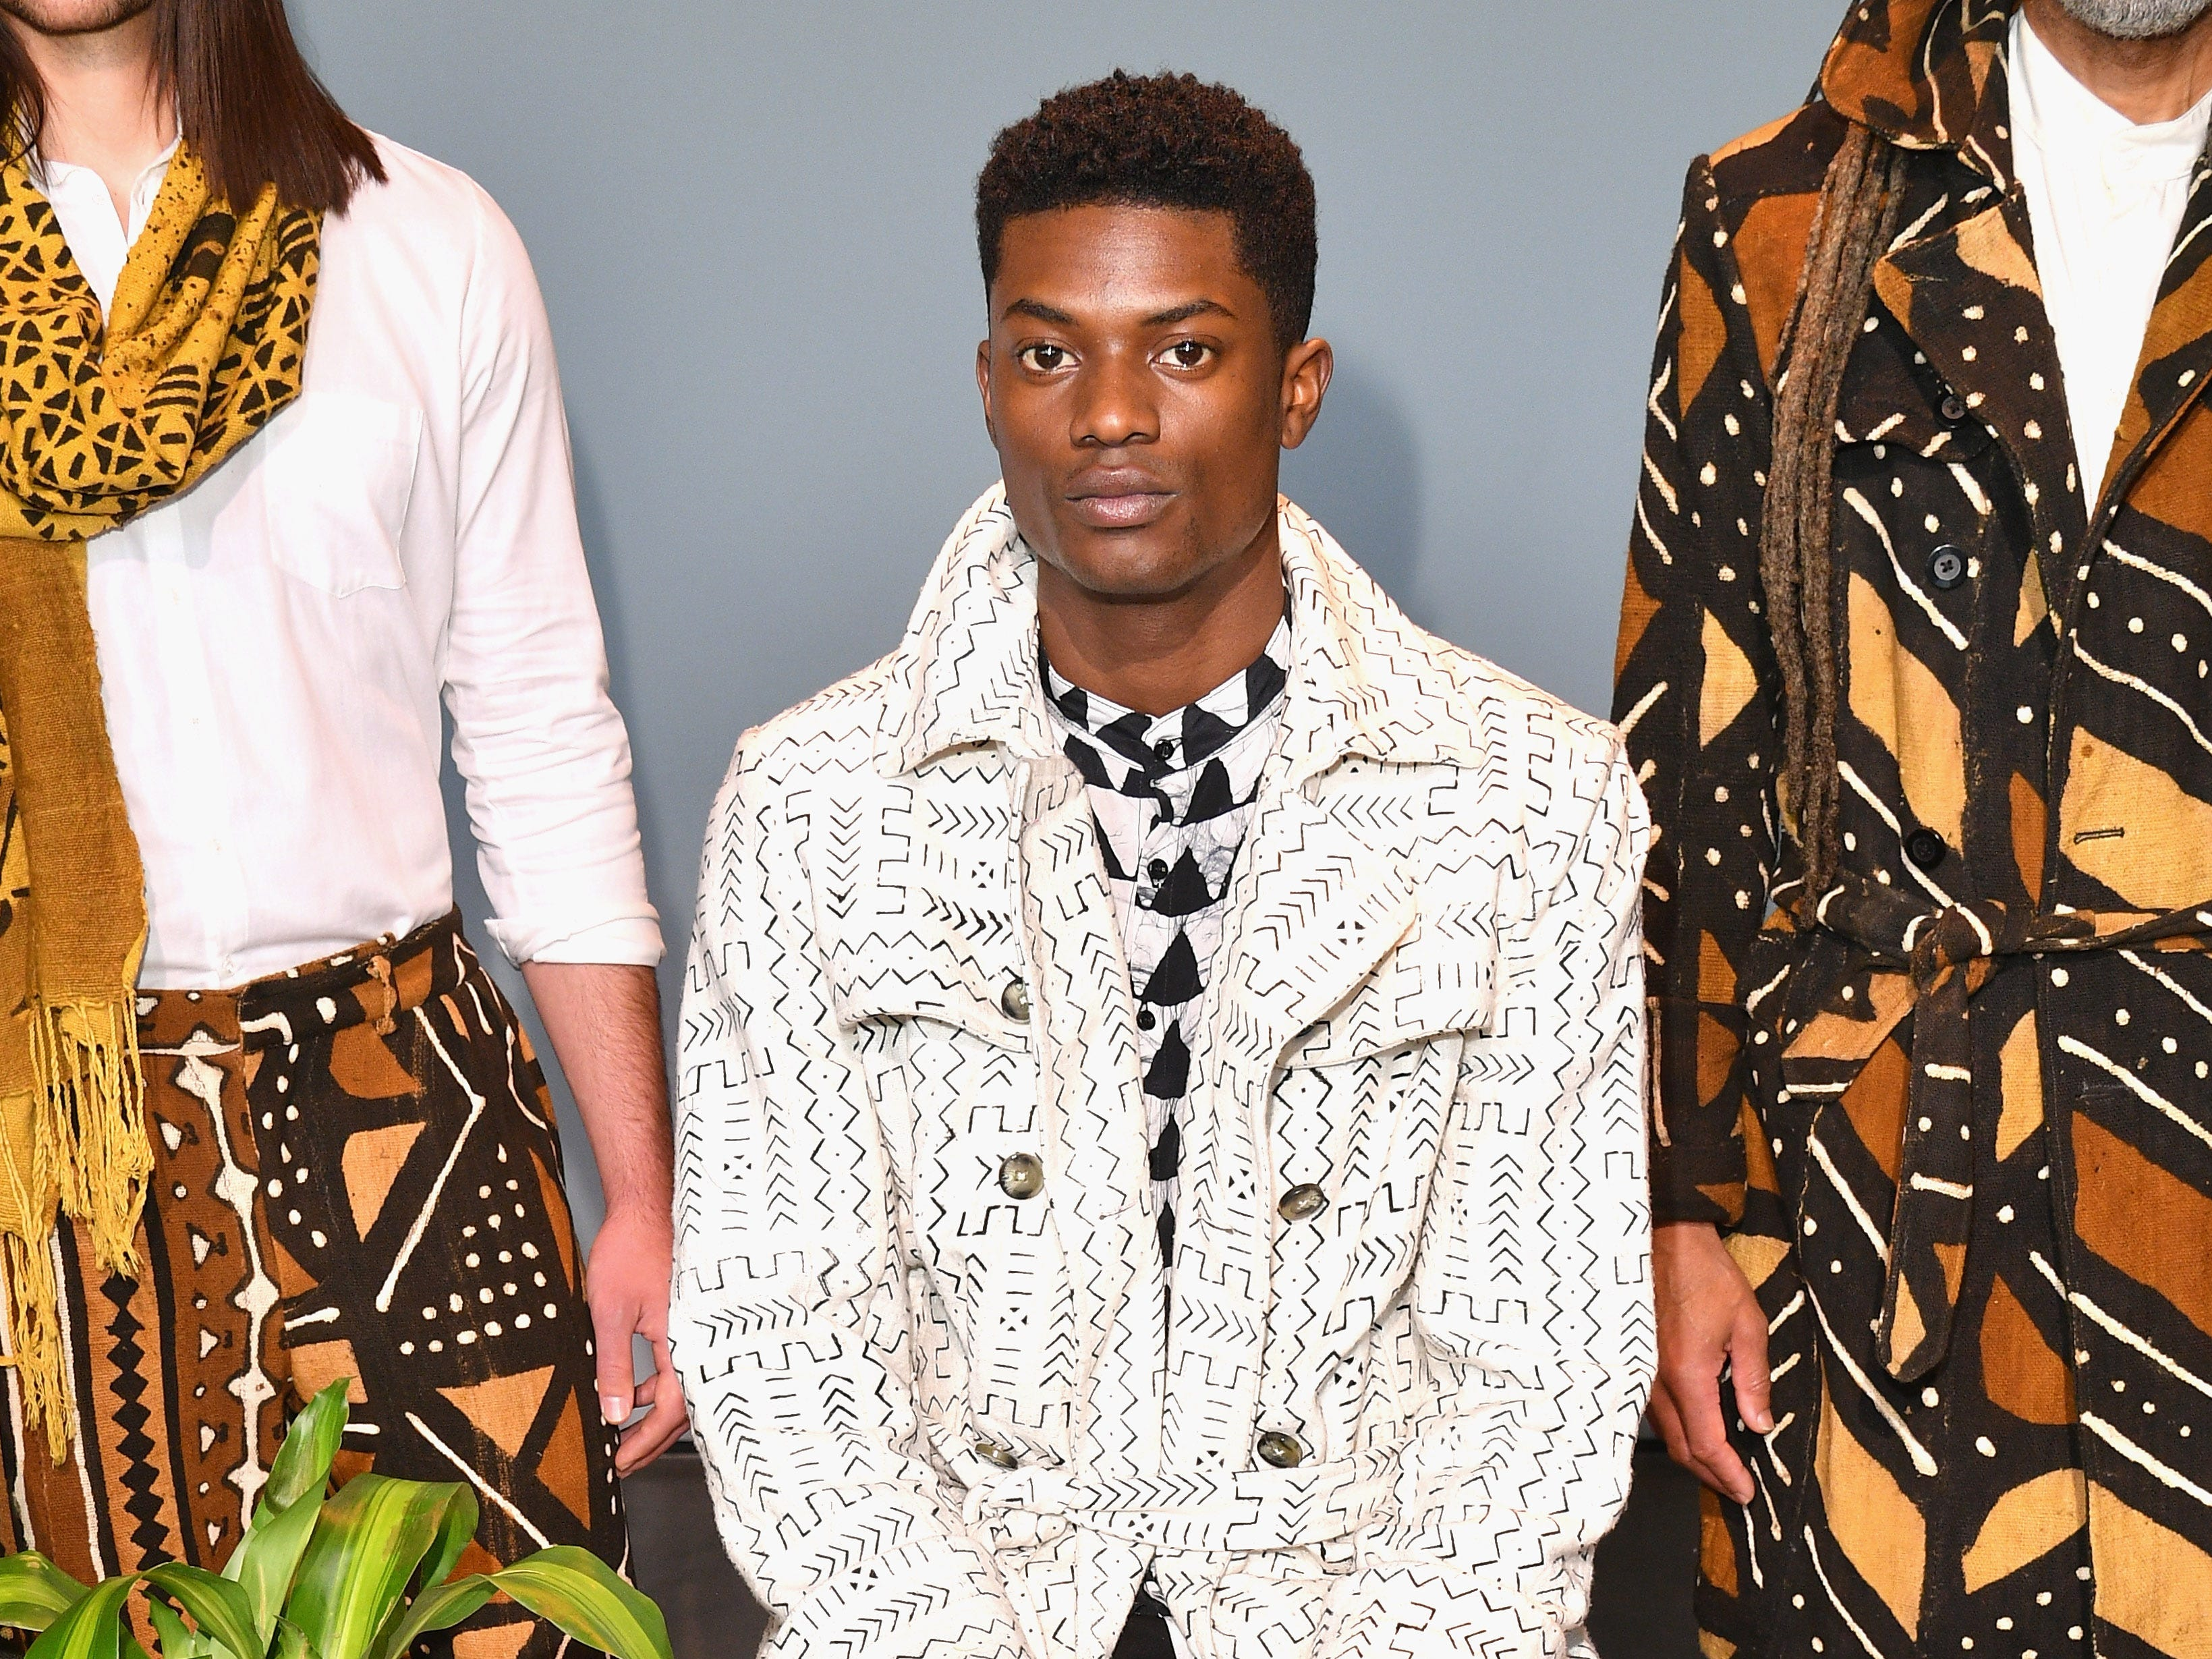 The triangles could also be spotted on this men's shirt under a white-and-black patterned trench coat from Studio 189.